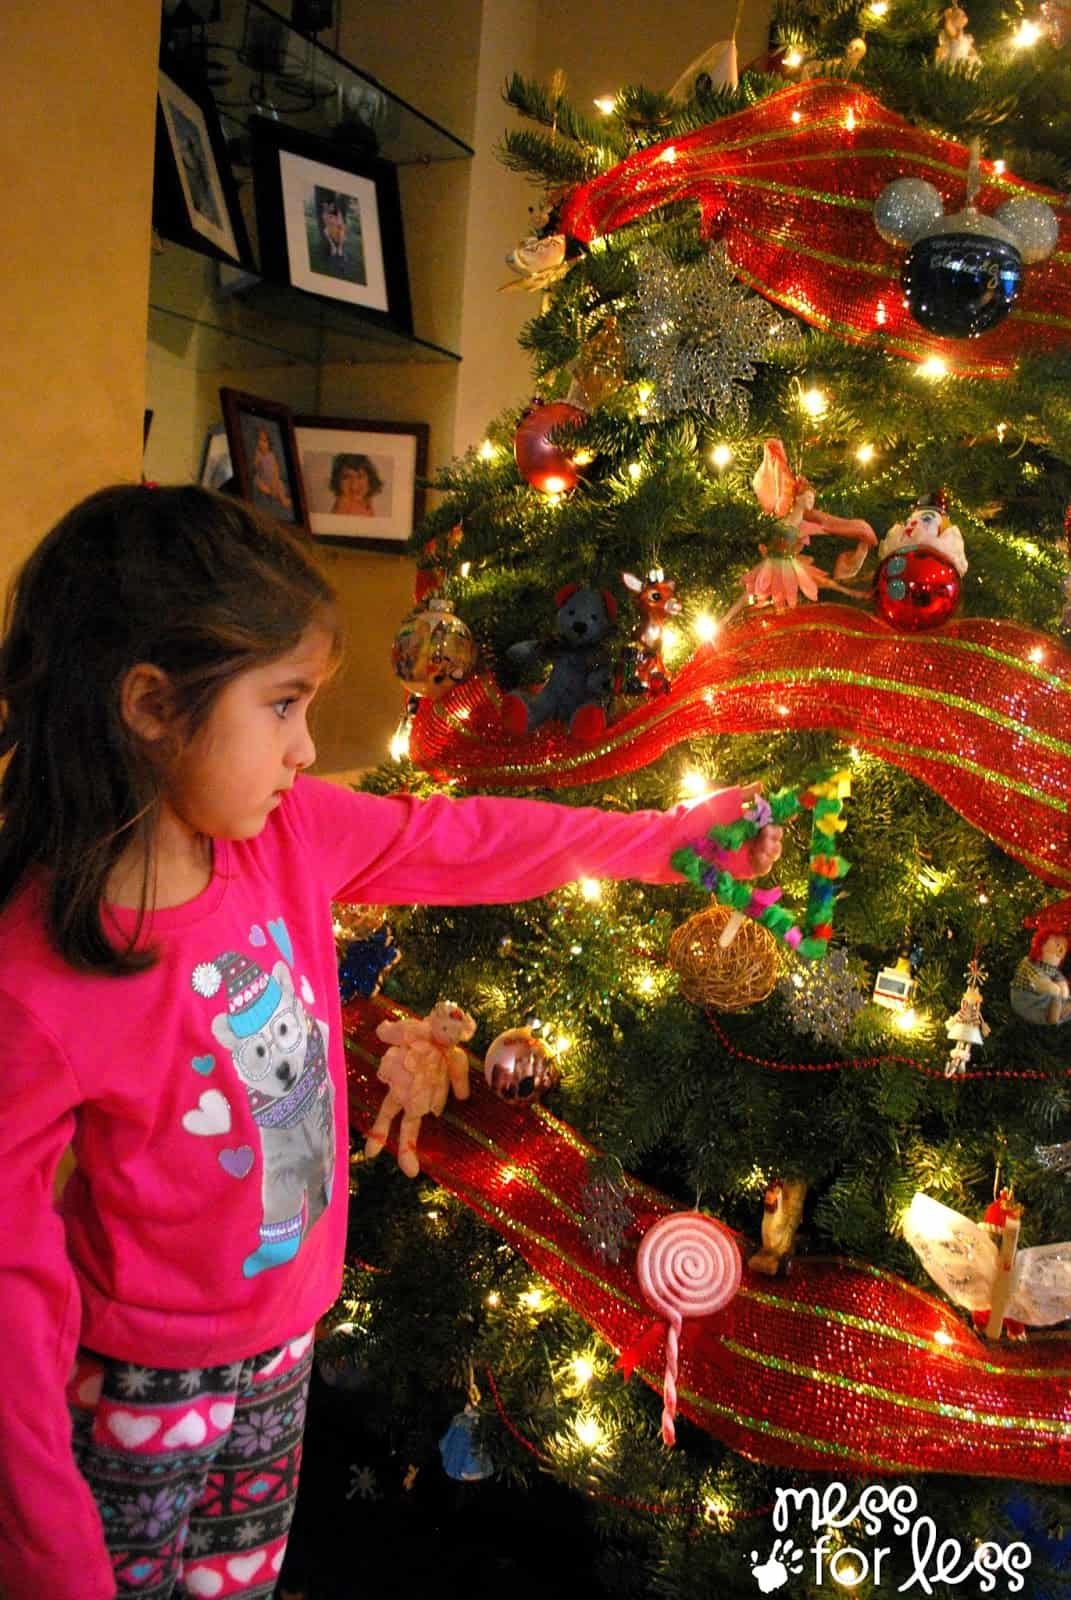 Decorating the tree #shop